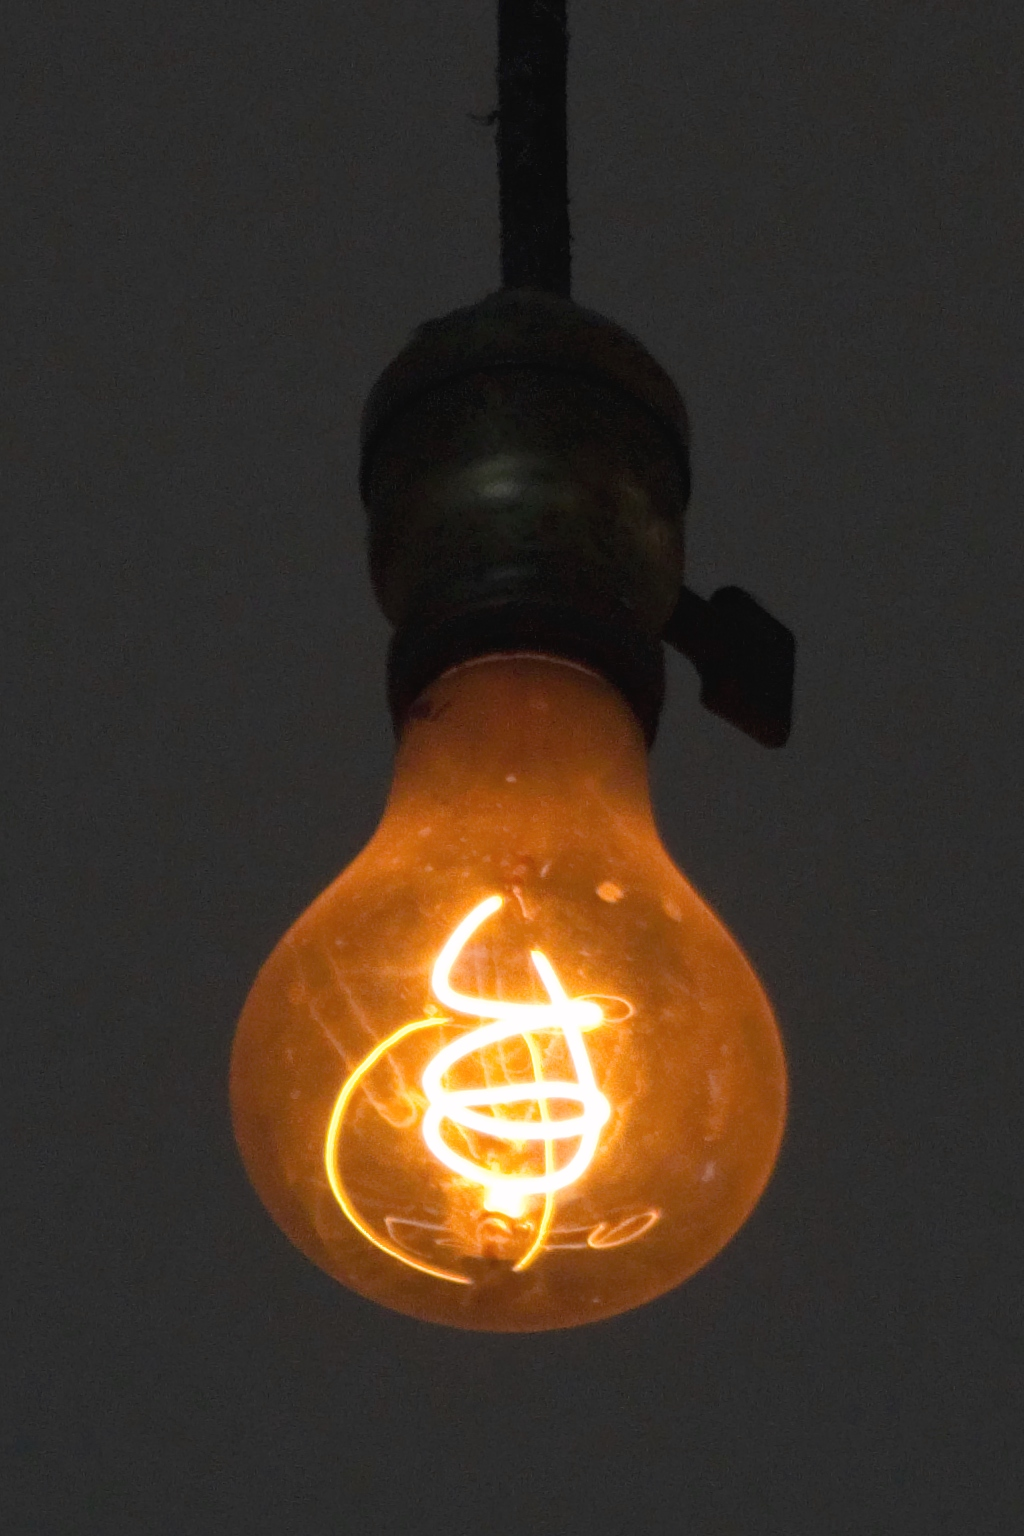 Centennial light wikipedia A light bulb